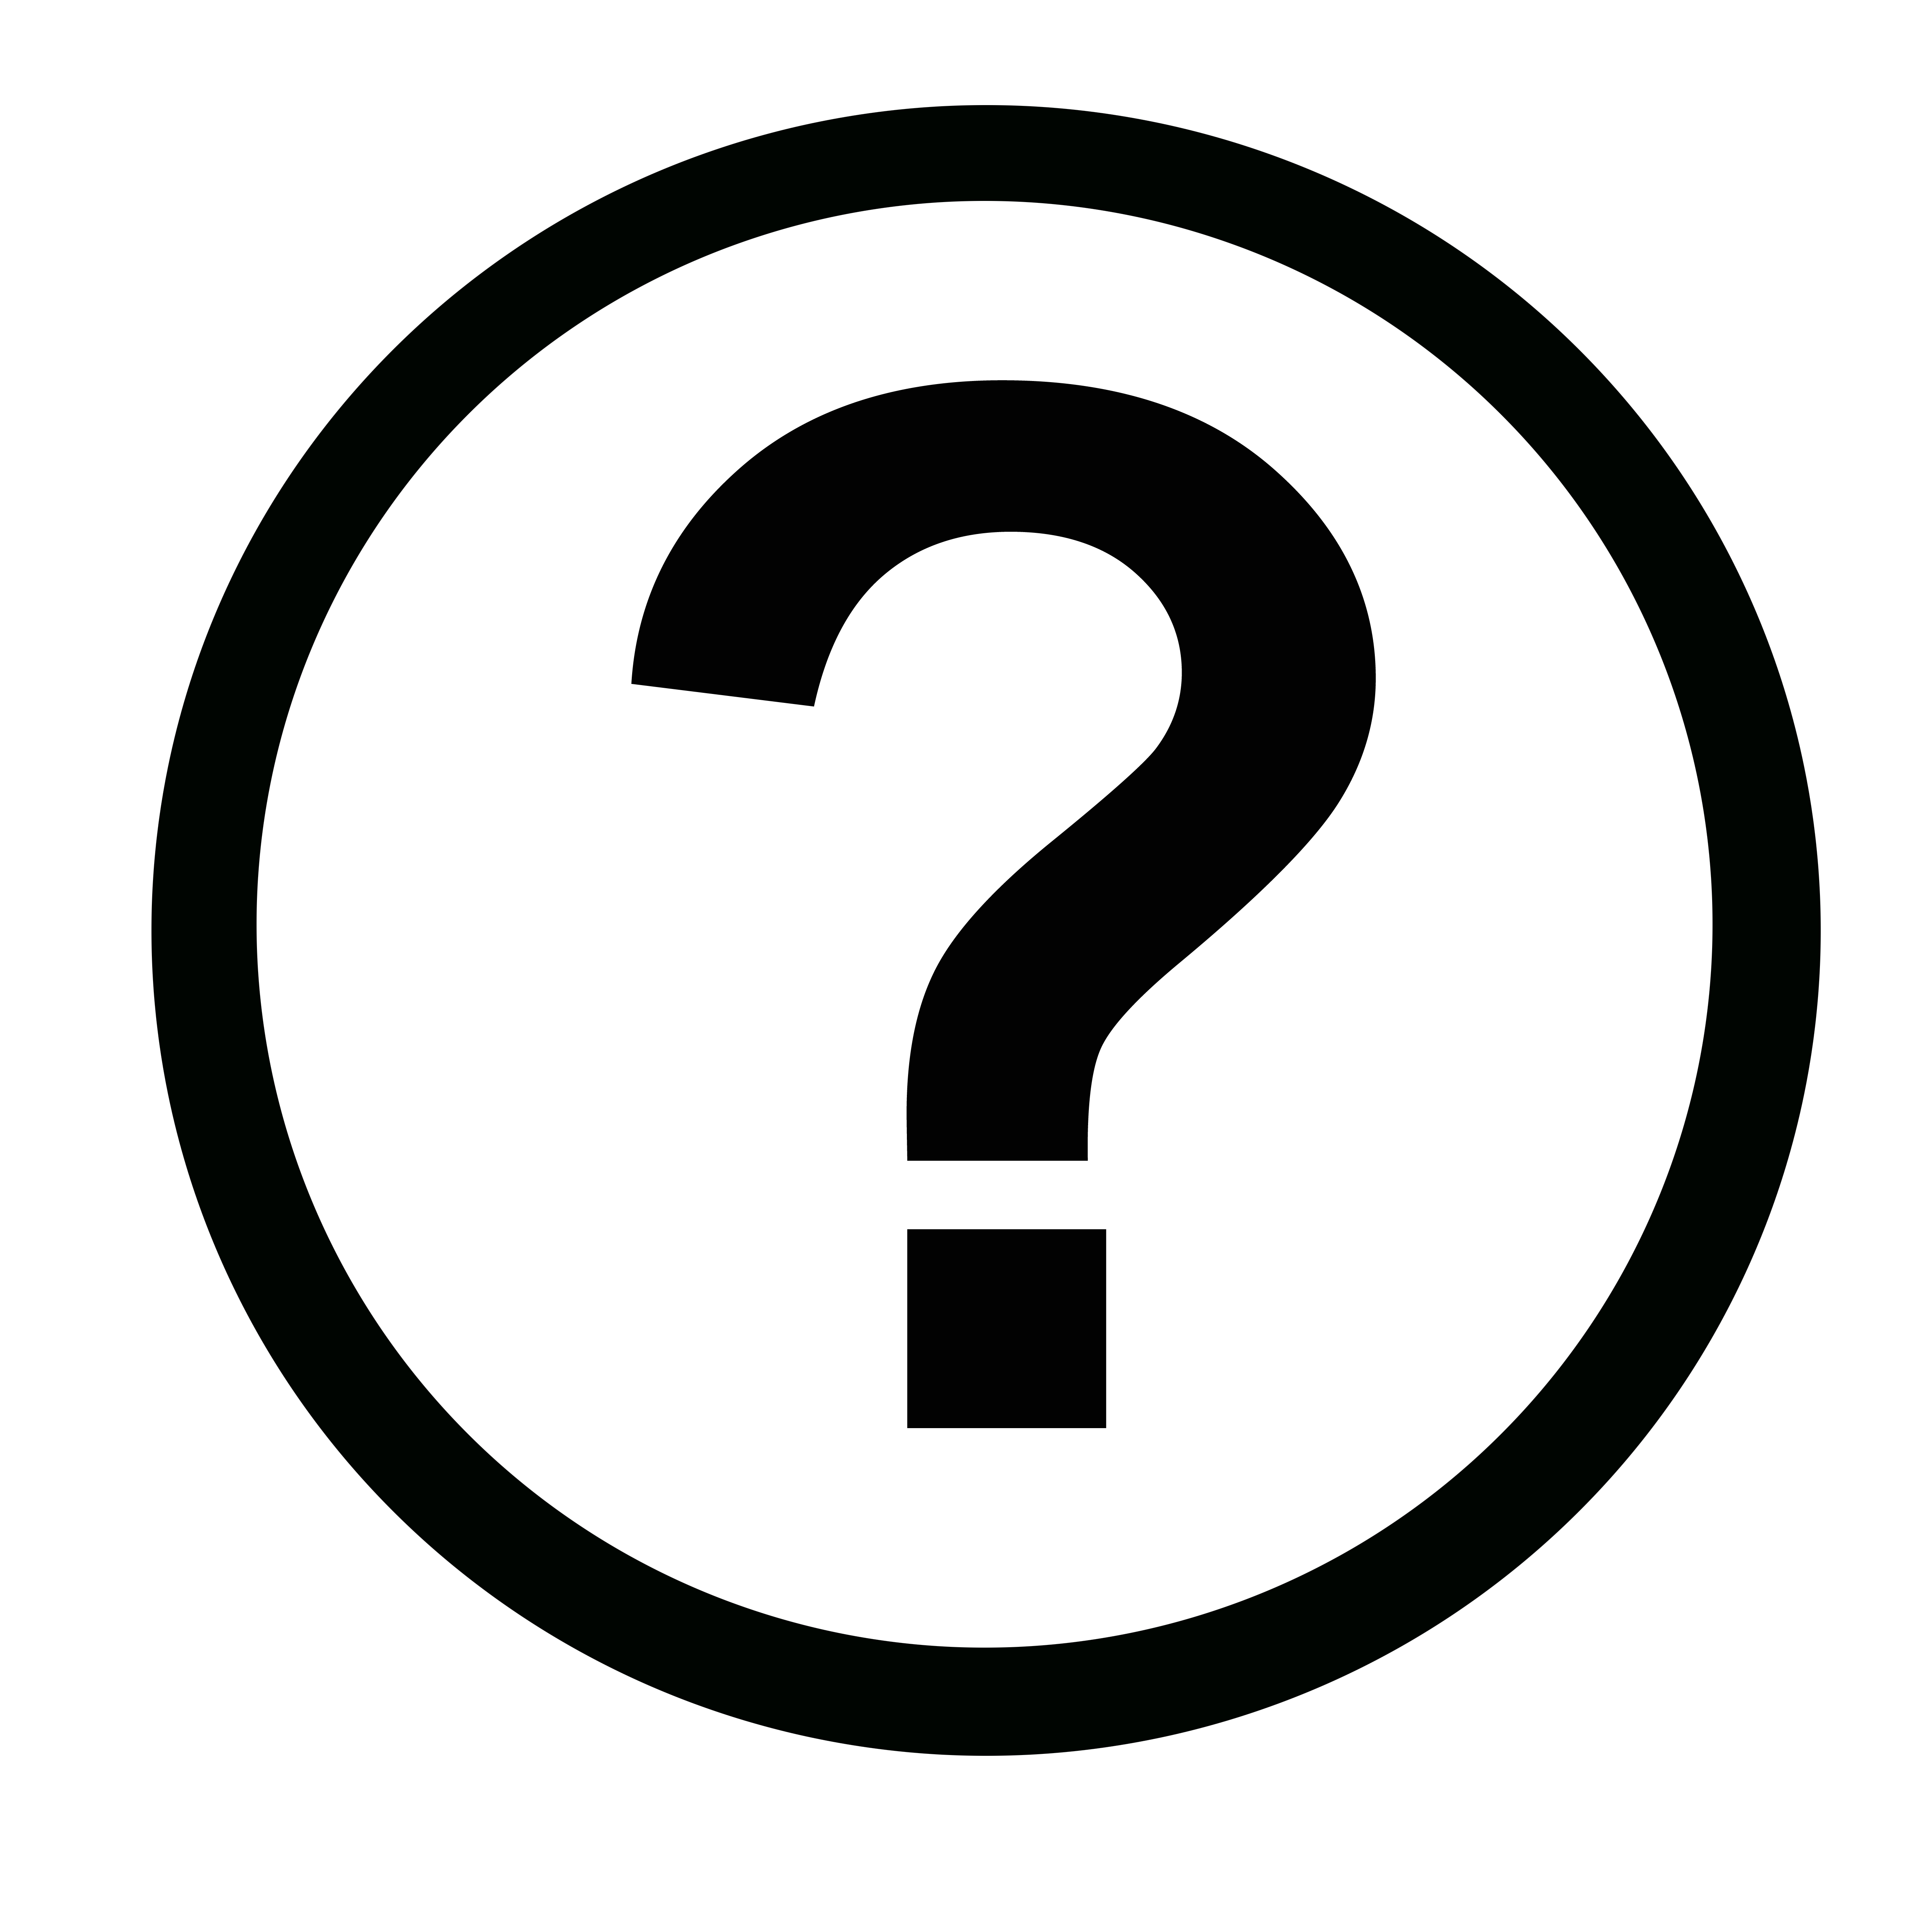 Image of black question mark on white background.